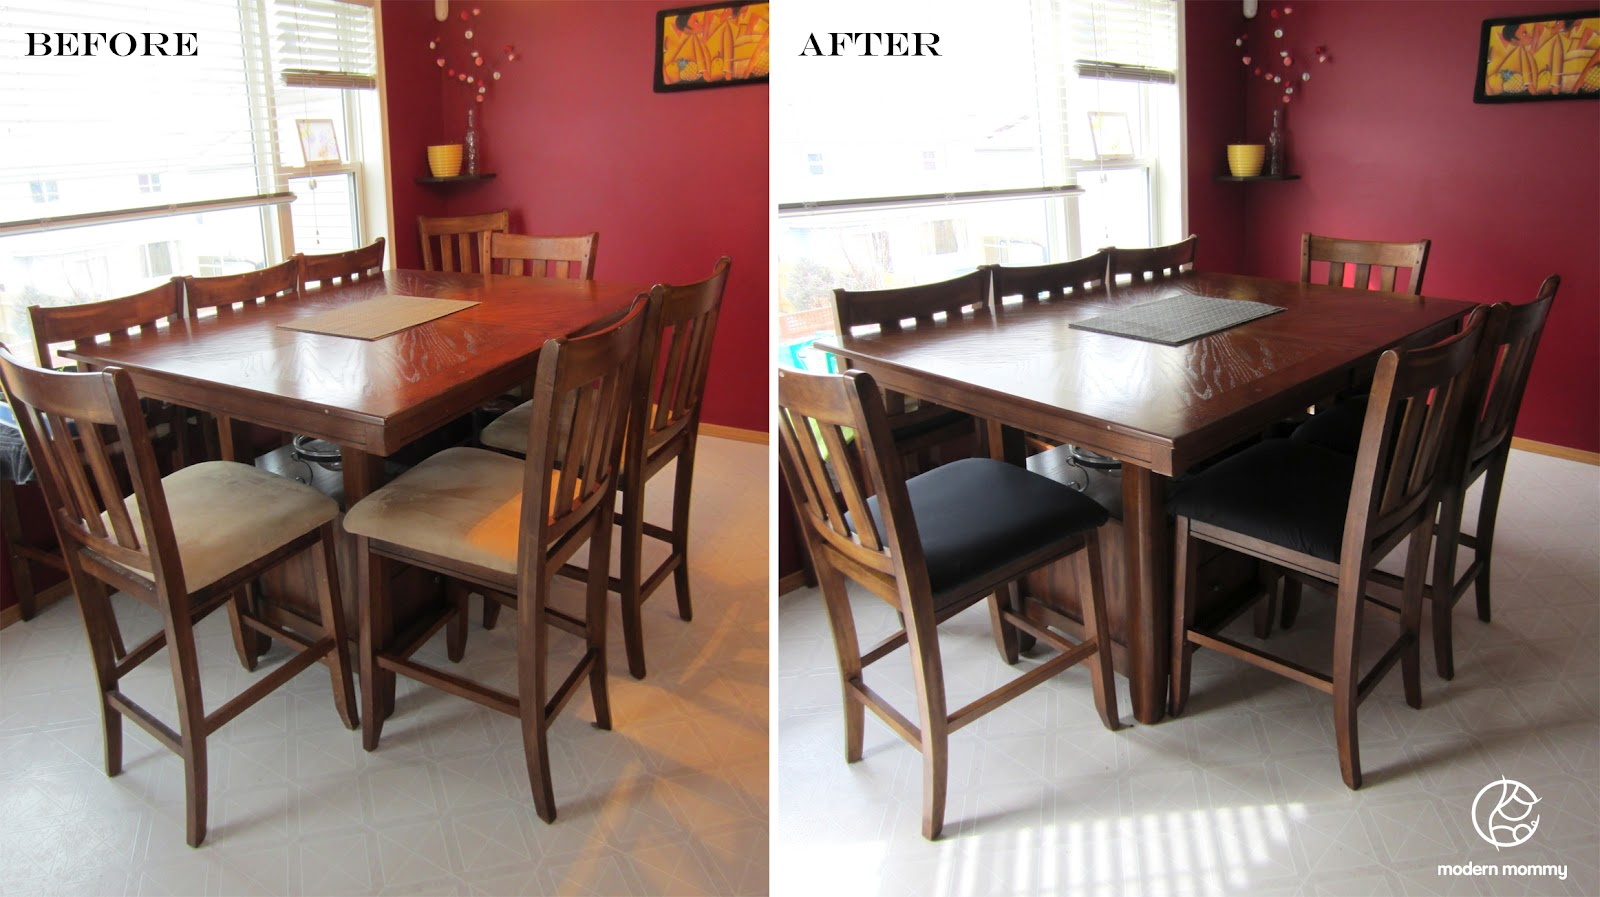 Reupholster a dining